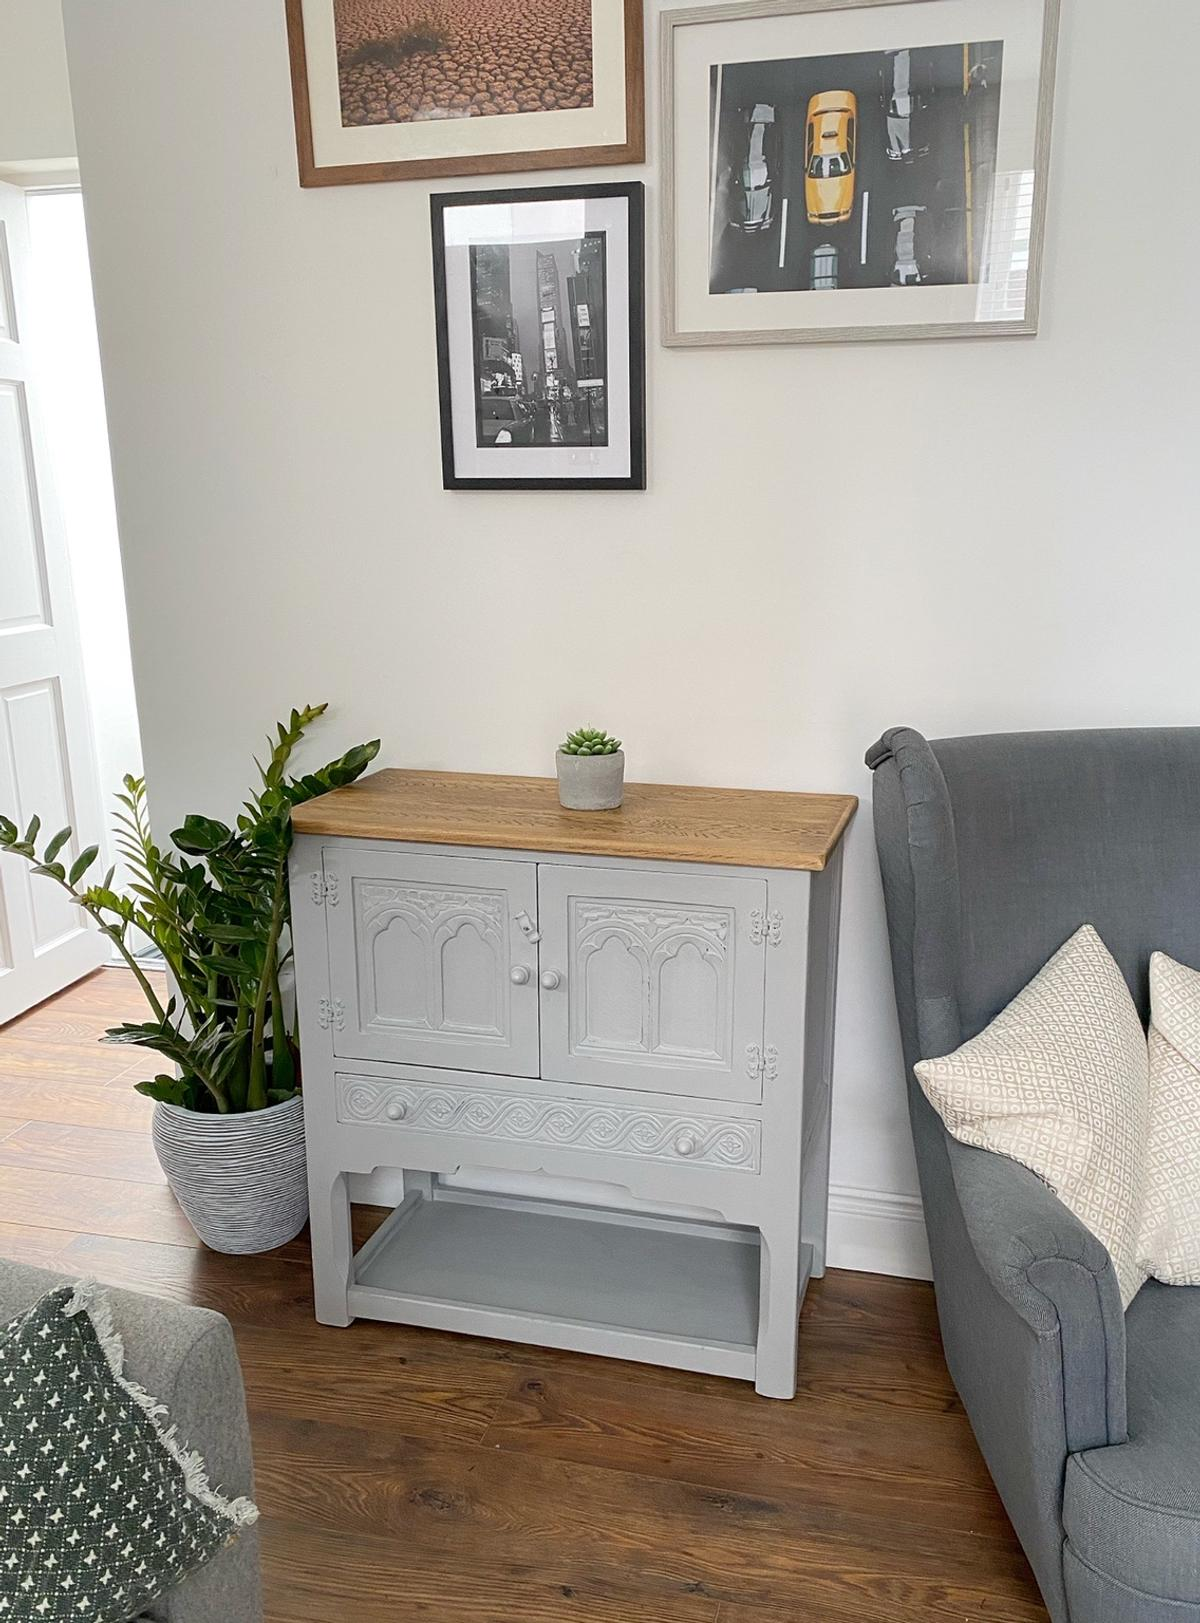 """Paris Grey Oak Cabinet Measures: Width: 32"""", Depth: 41cm/16"""", Height: 84cm/33"""".  I can deliver fast and free of charge within the Cheltenham area or you can collect from Leckhampton. Payment made via cash or bank transfer. More furniture available.  Any questions please ask."""